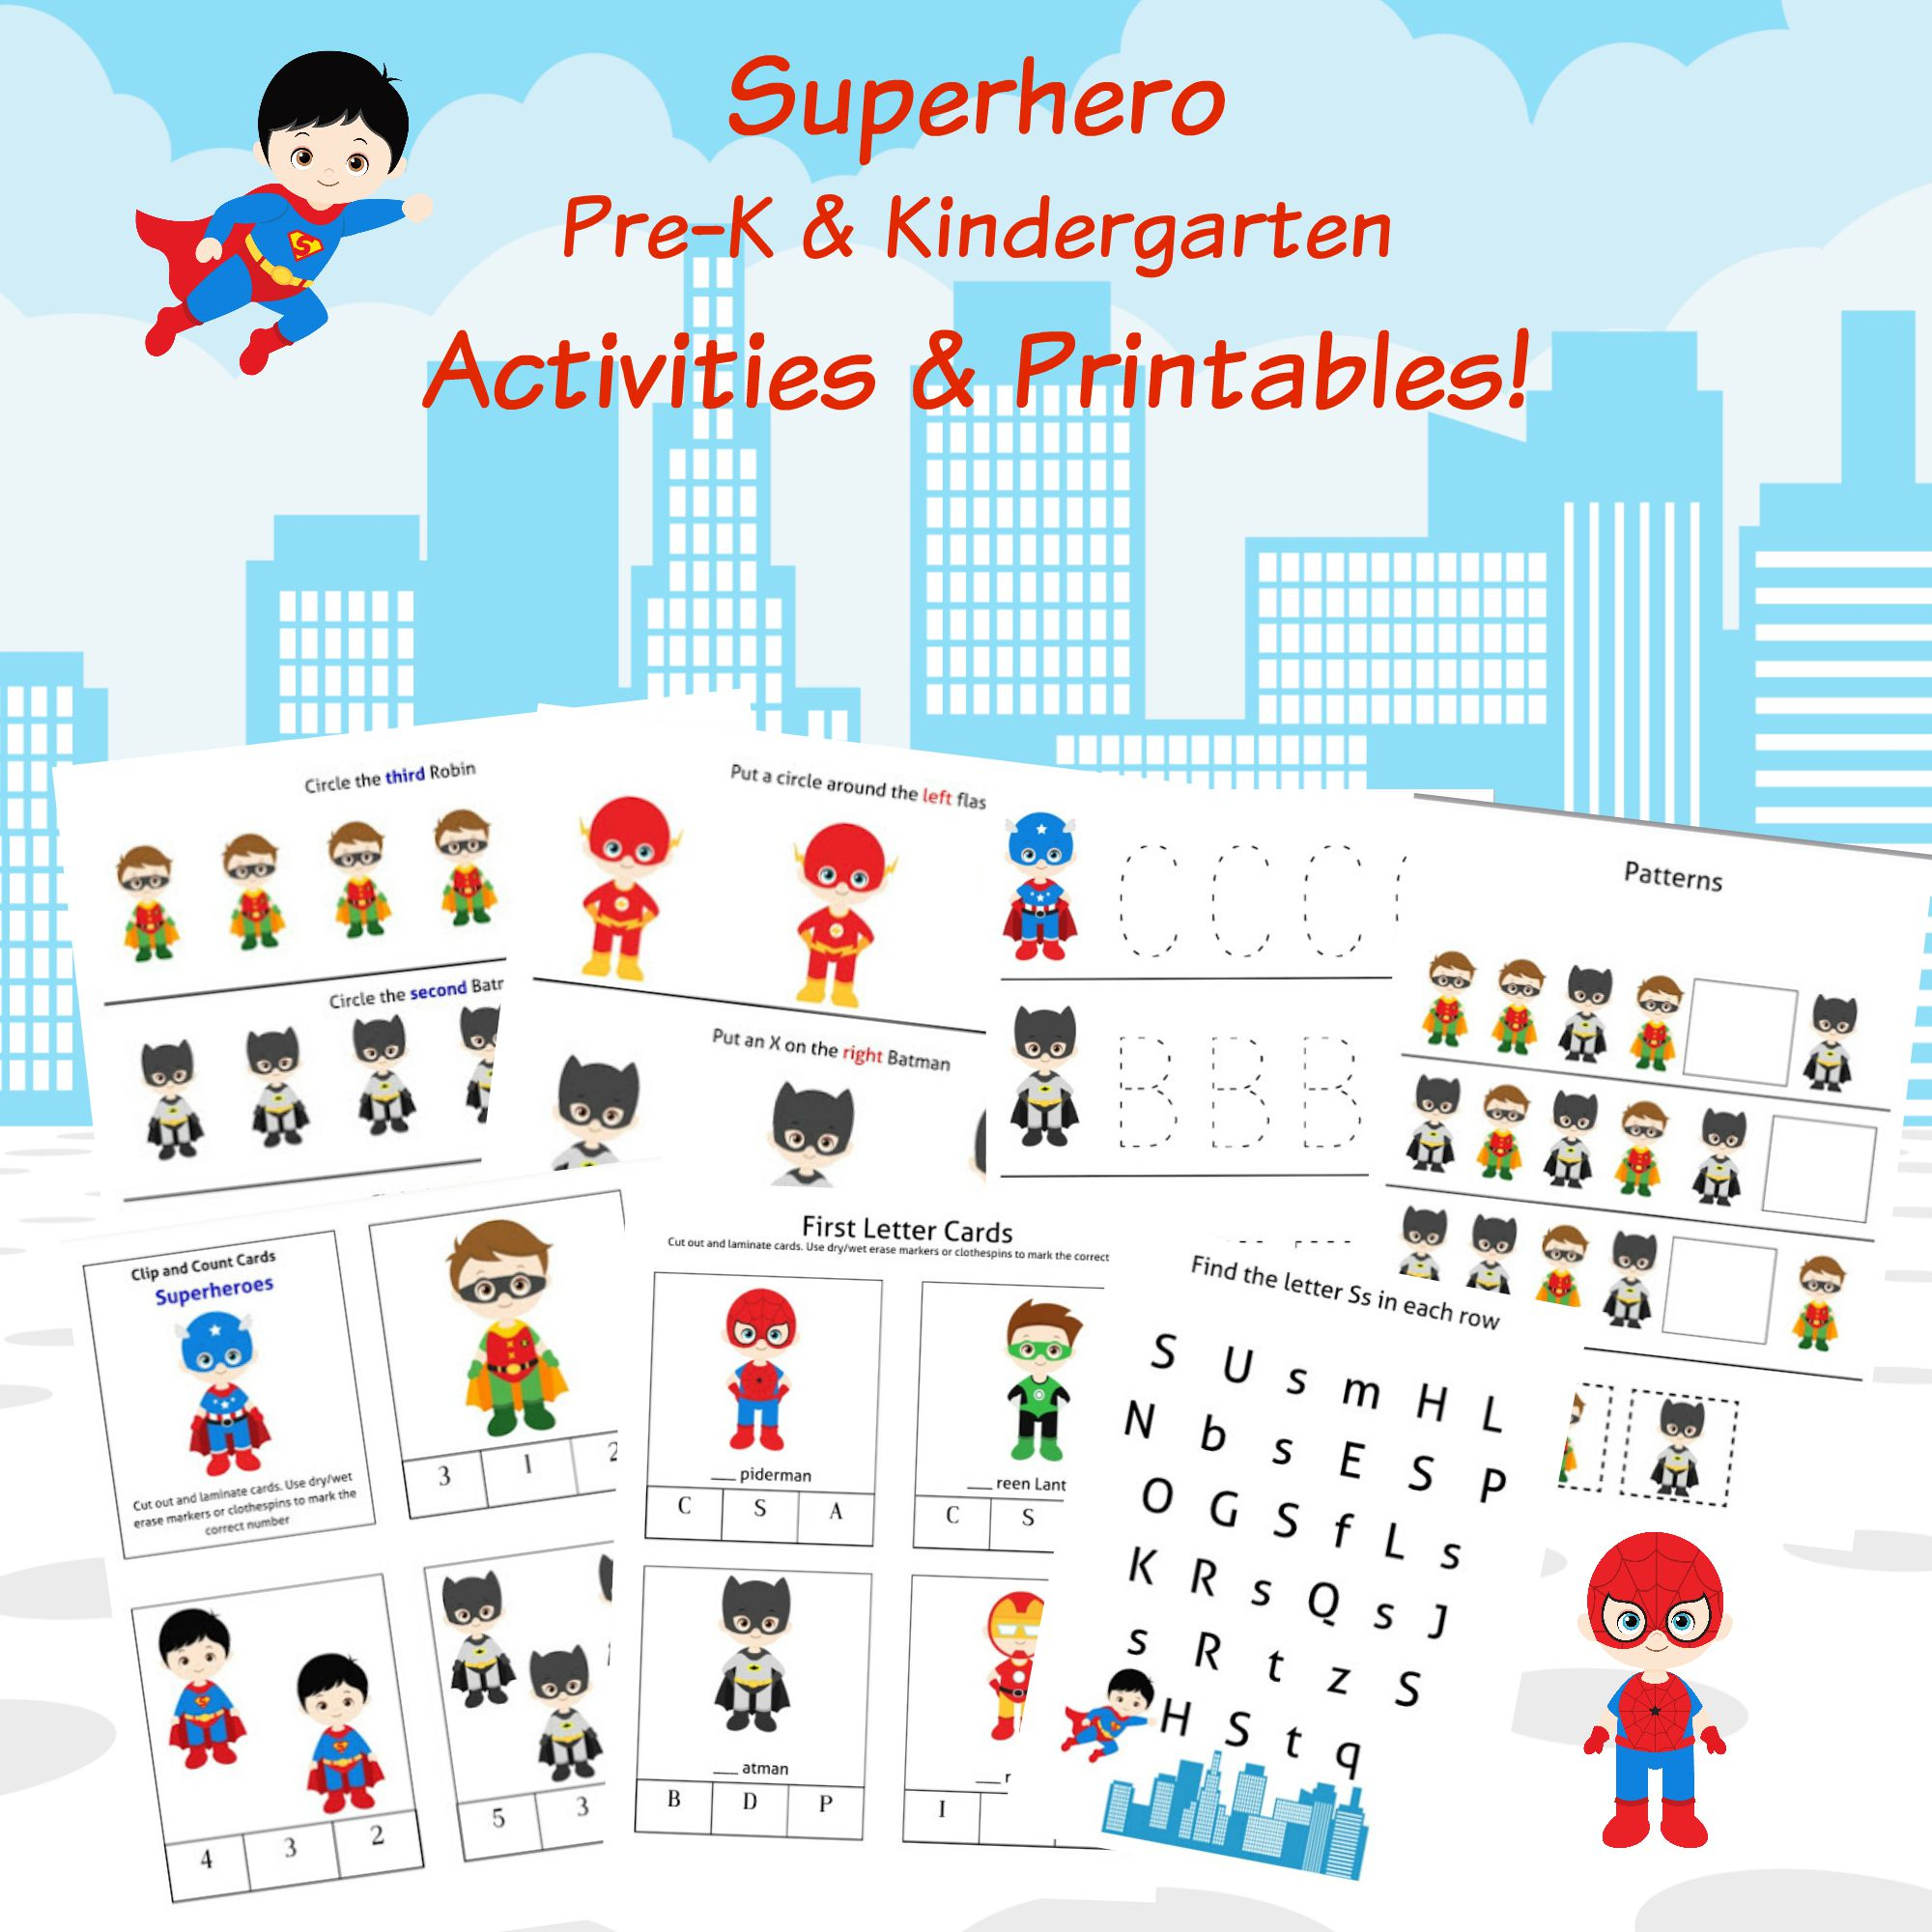 Free 30 Page Superheroes Printables Amp Activities